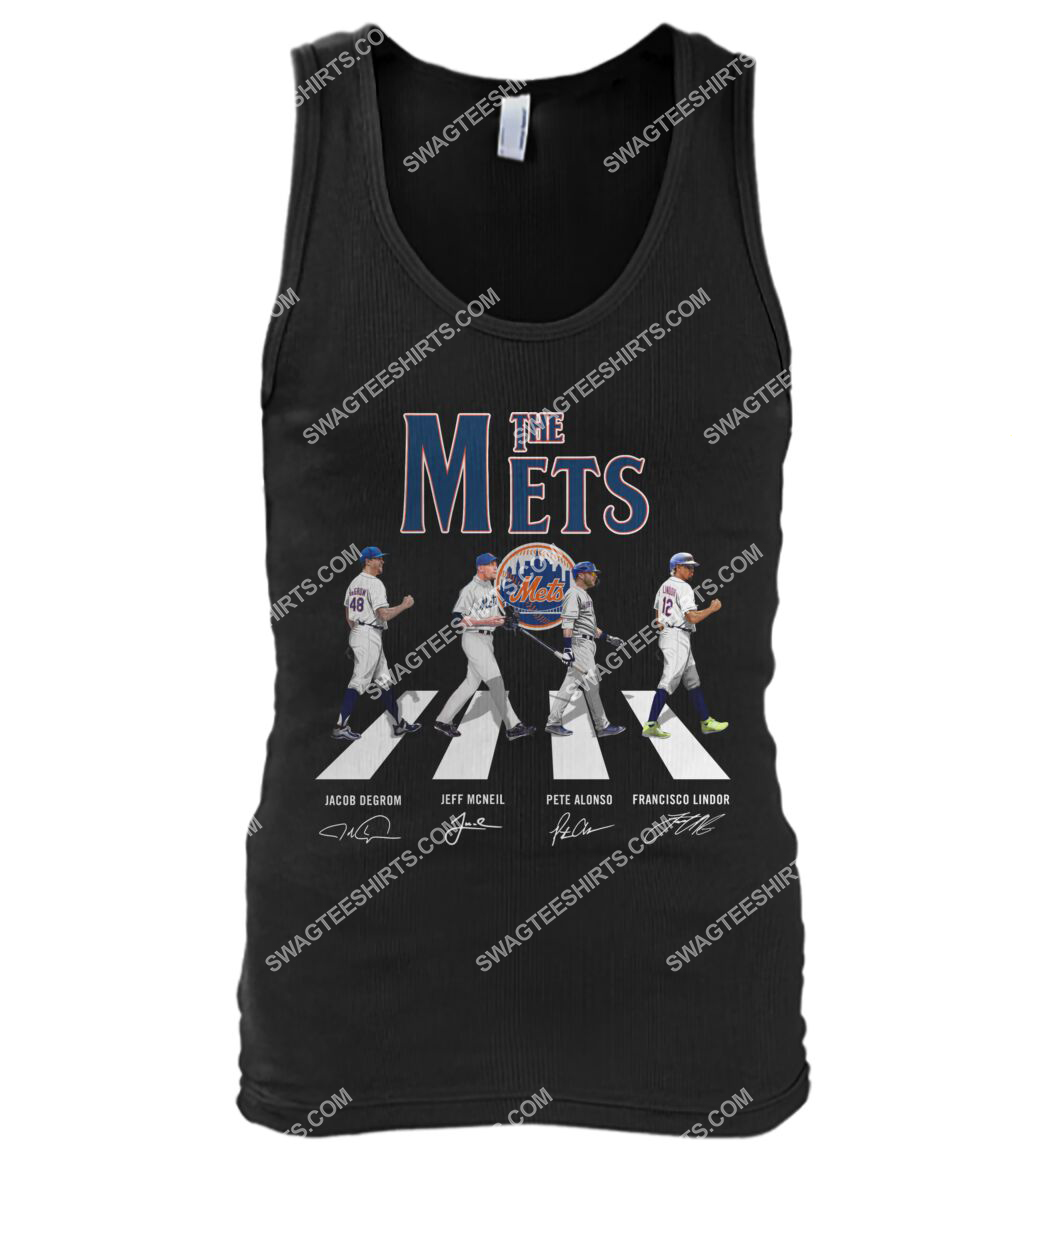 abbey road the new york mets signatures tank top 1